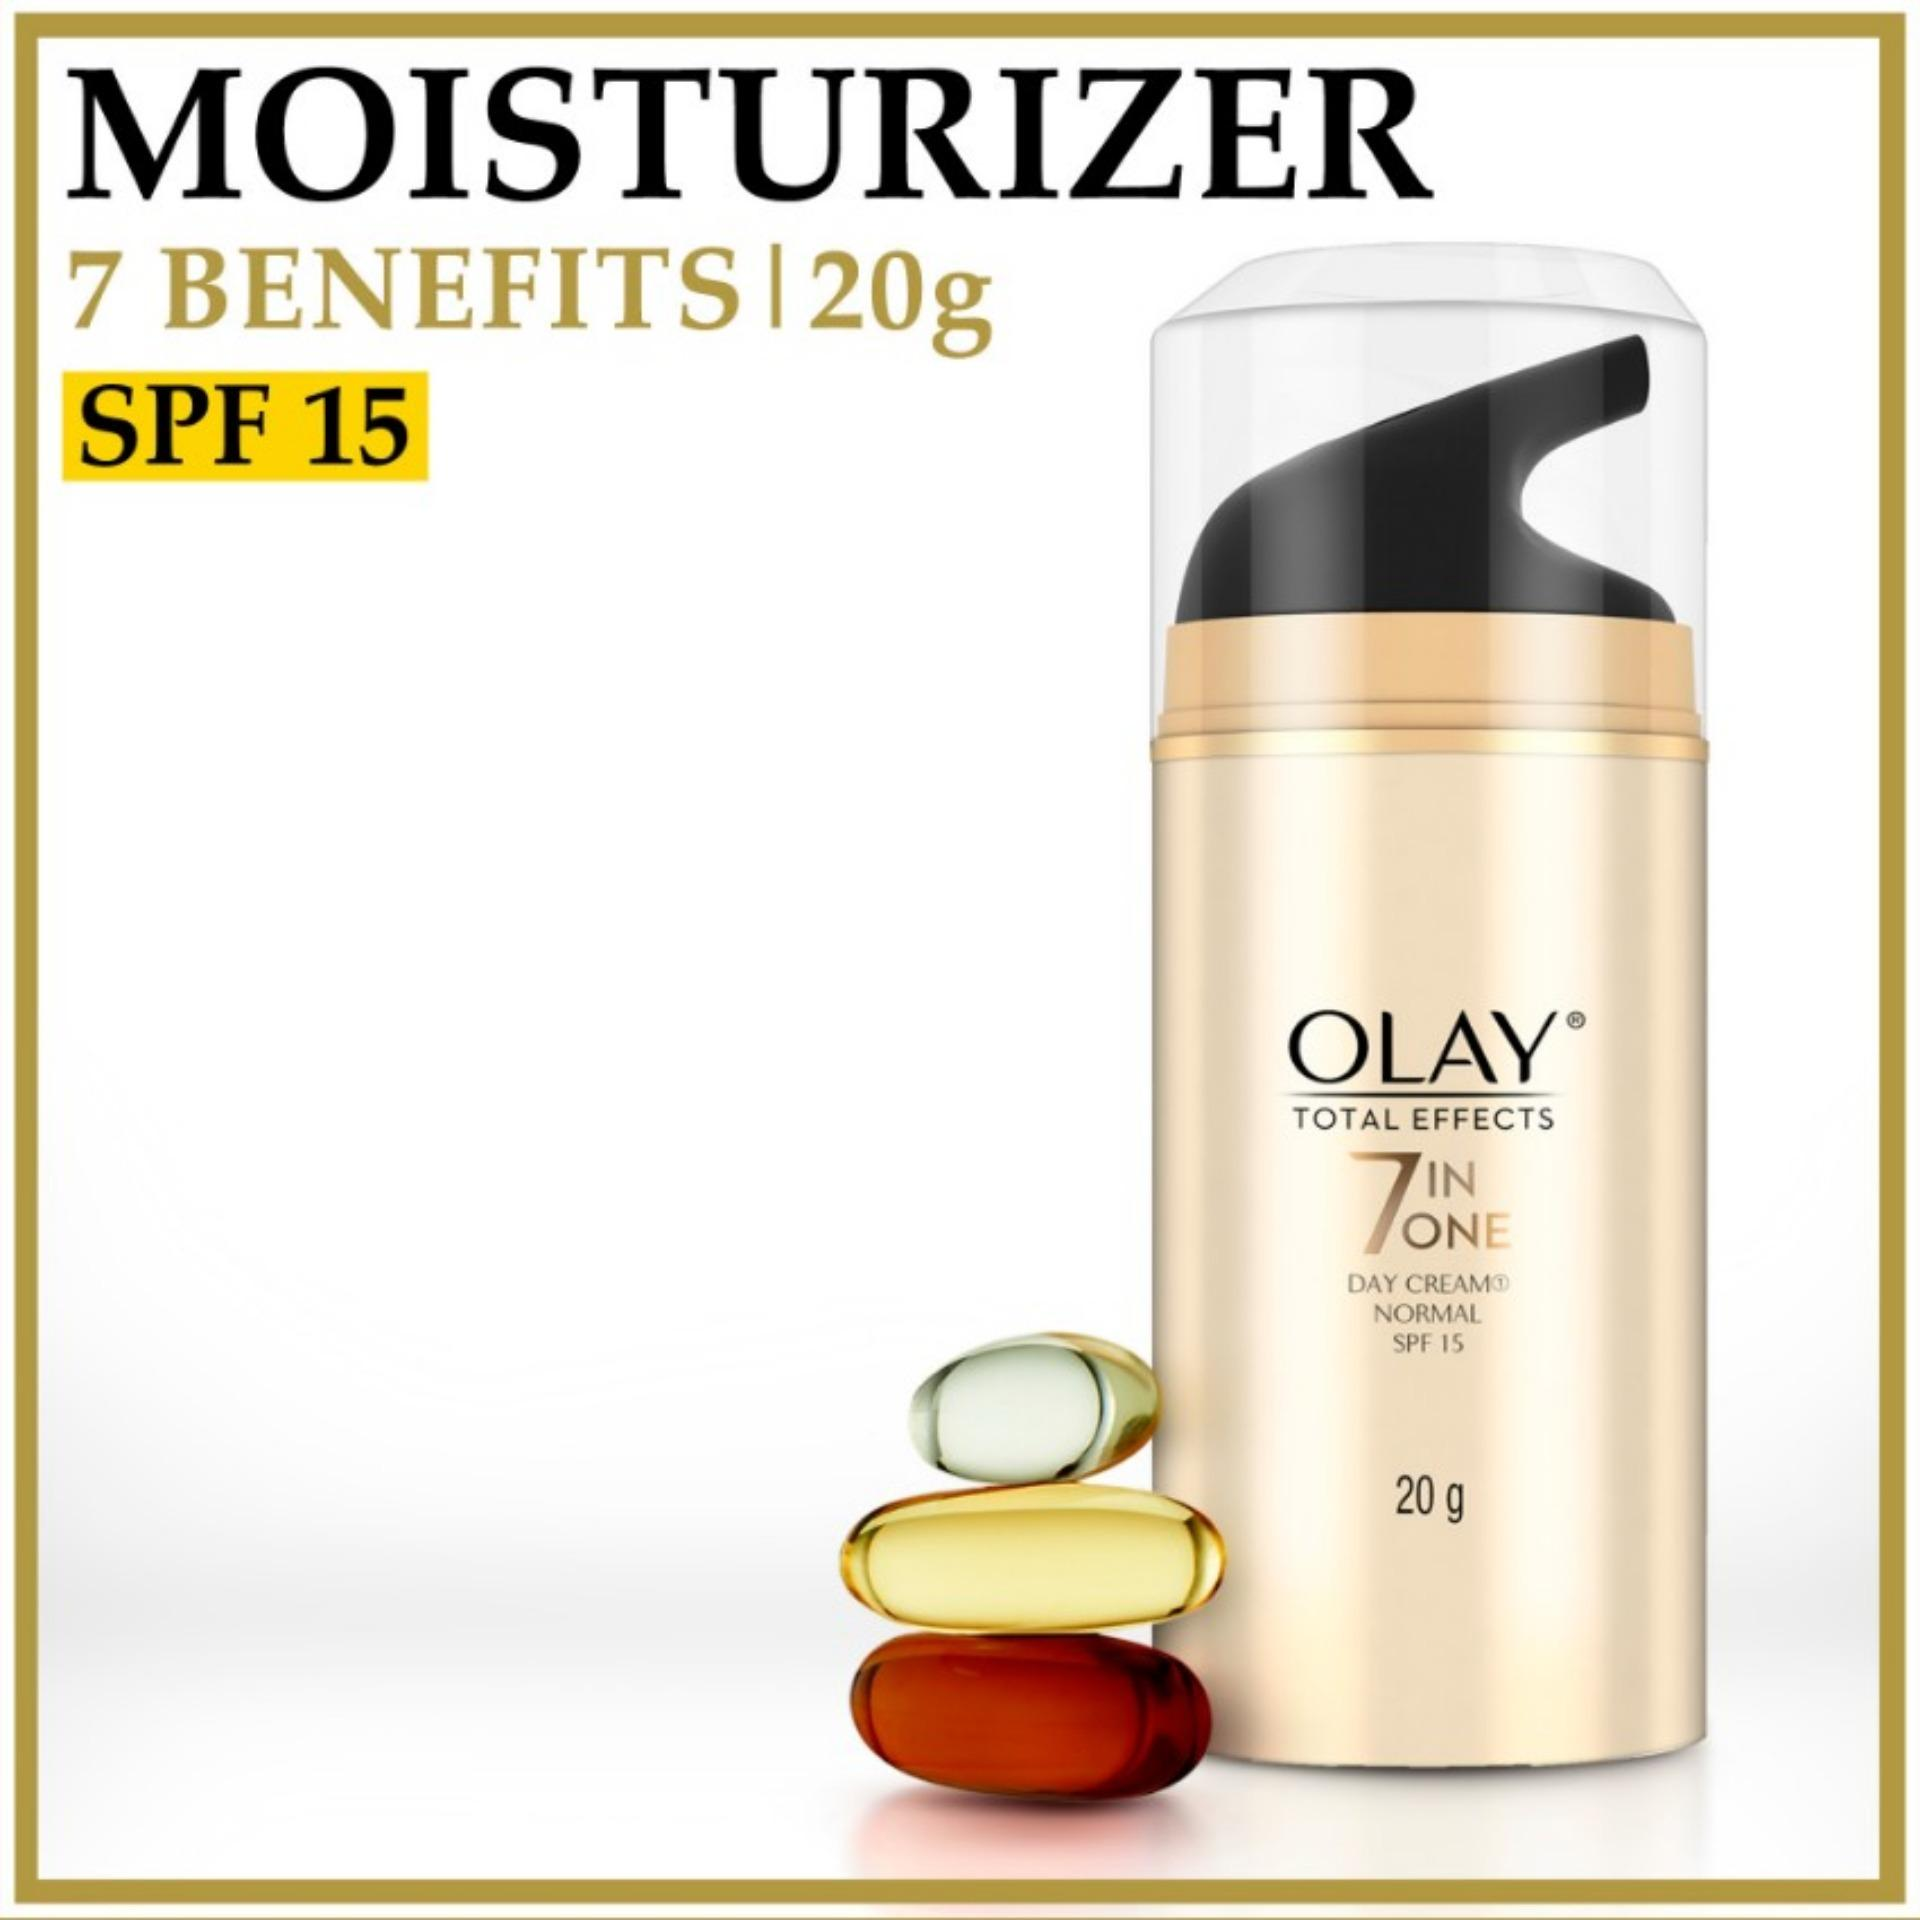 Olay Philippines Price List Anti Aging Cream Soap Total Effects 7 In One Day Touch Of Foundation Spf 15 50gr Normal Spf15 20g